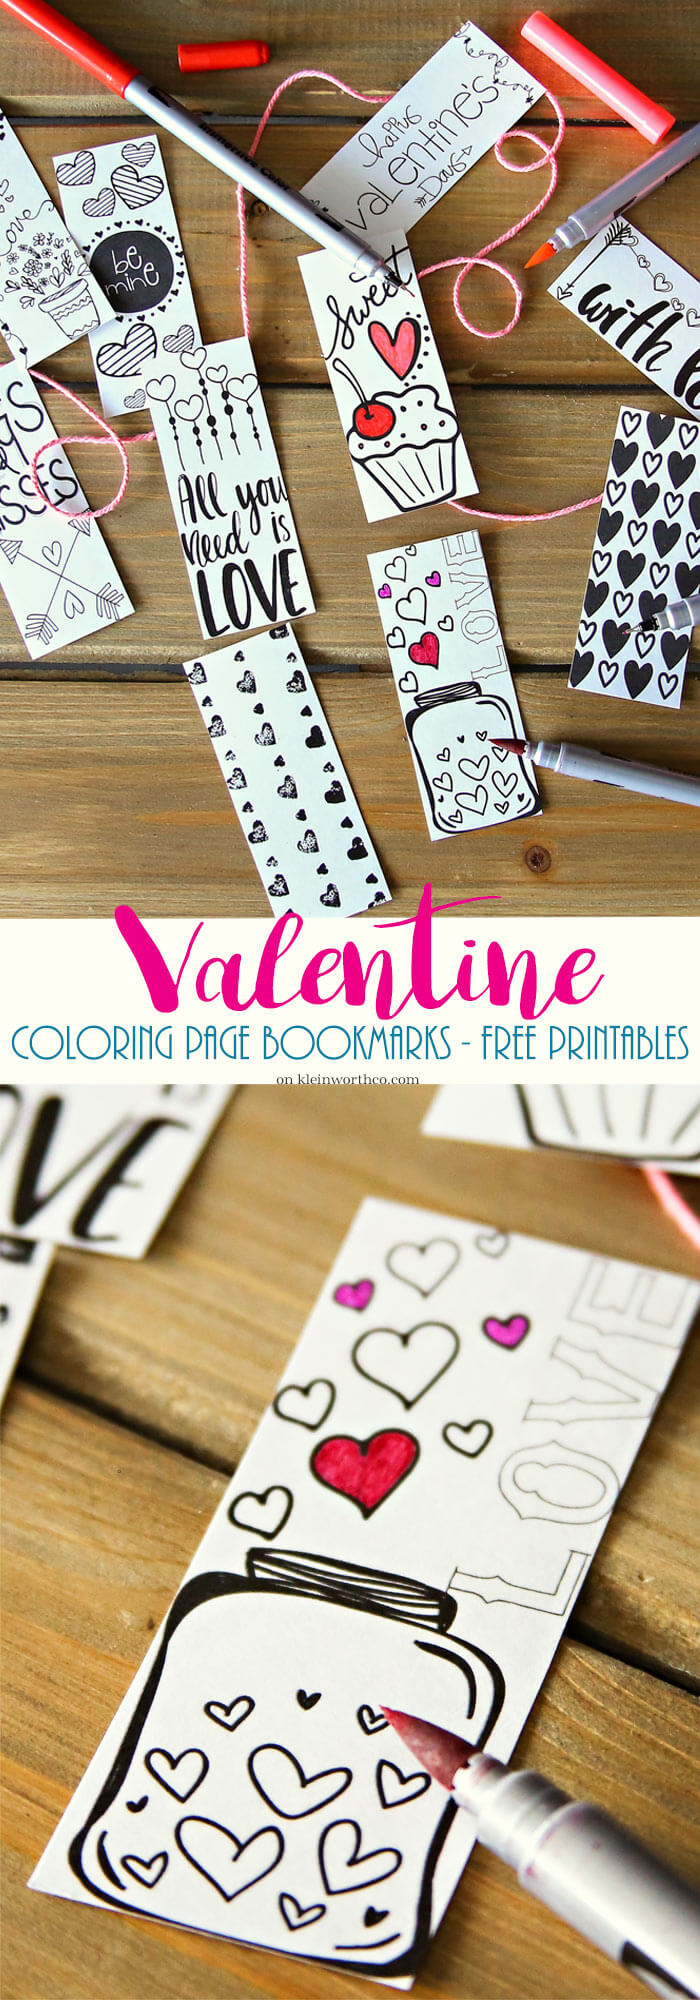 Valentine bookmark to color - Valentine Printable Coloring Page Bookmarks